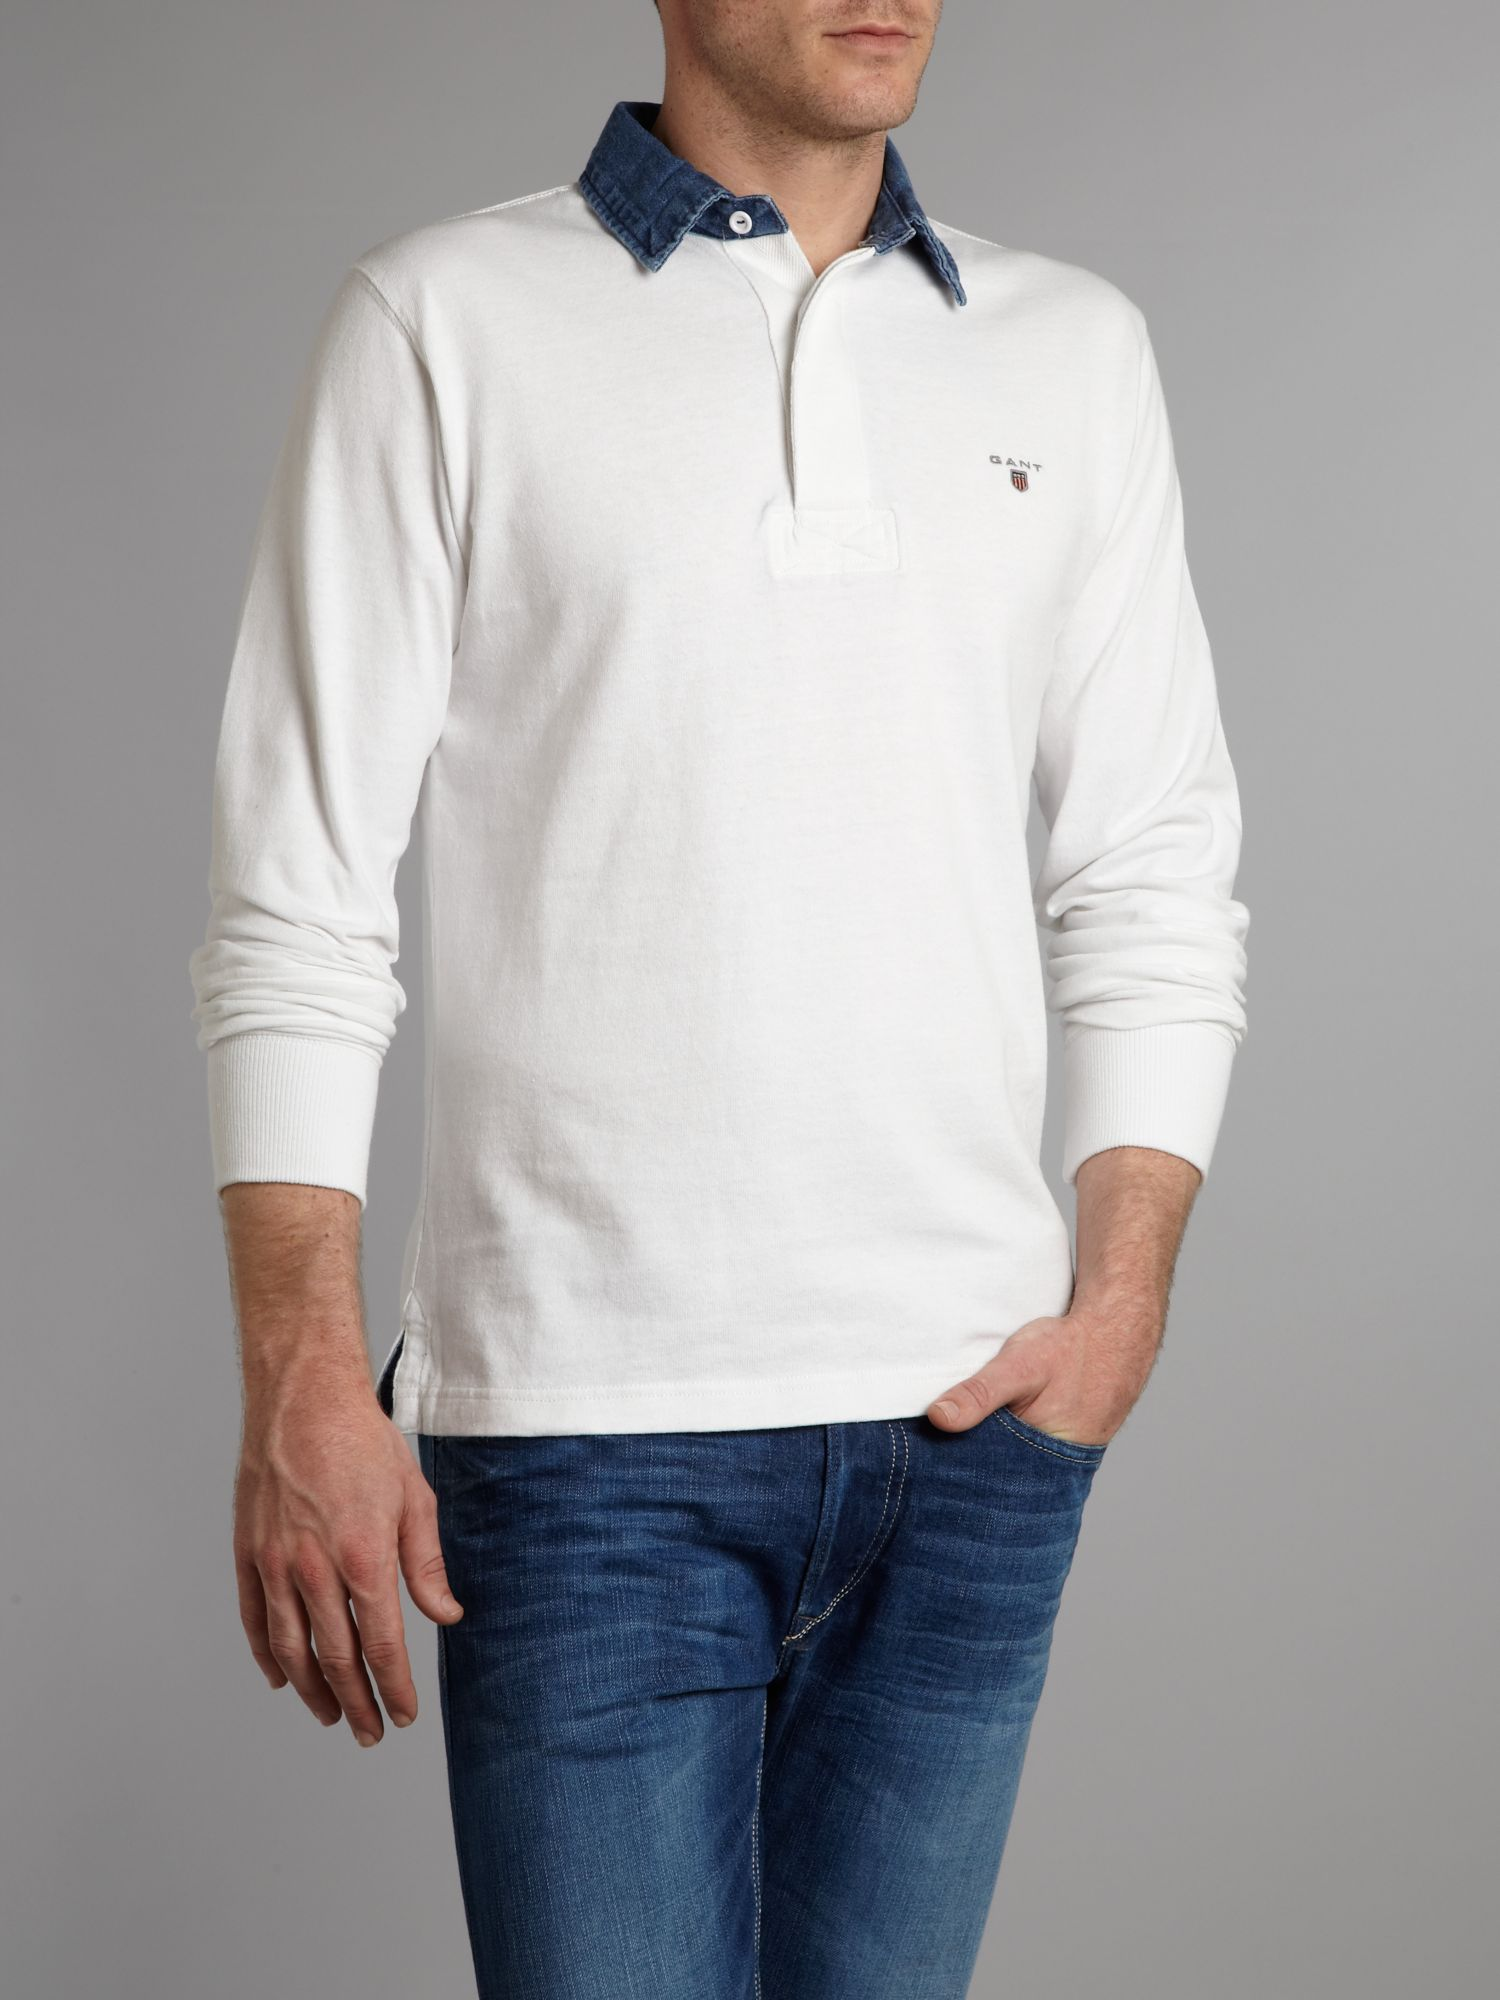 Regular fit chambray collar rugby shirt